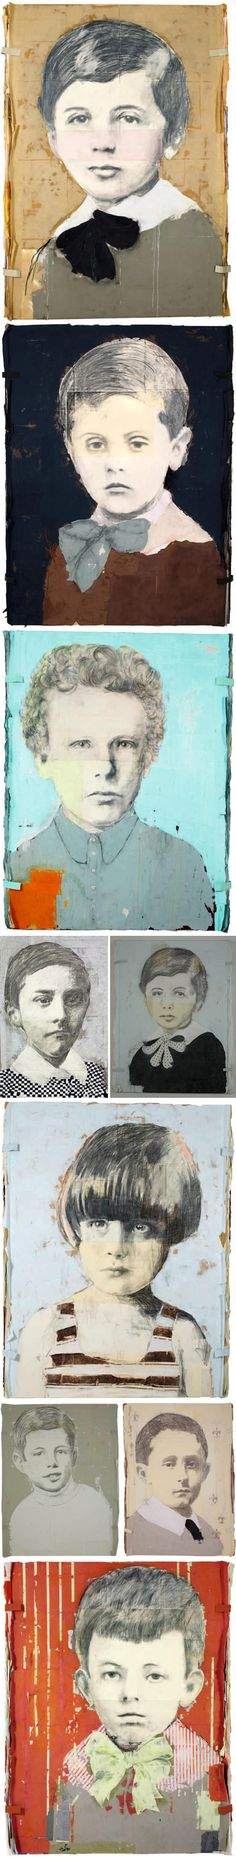 """Louis Boudreault's large scale mixed media series titled """"Destiny"""" are the childhood portraits of such greats as Picasso, Warhol, Van Gogh, Elvis etc!"""